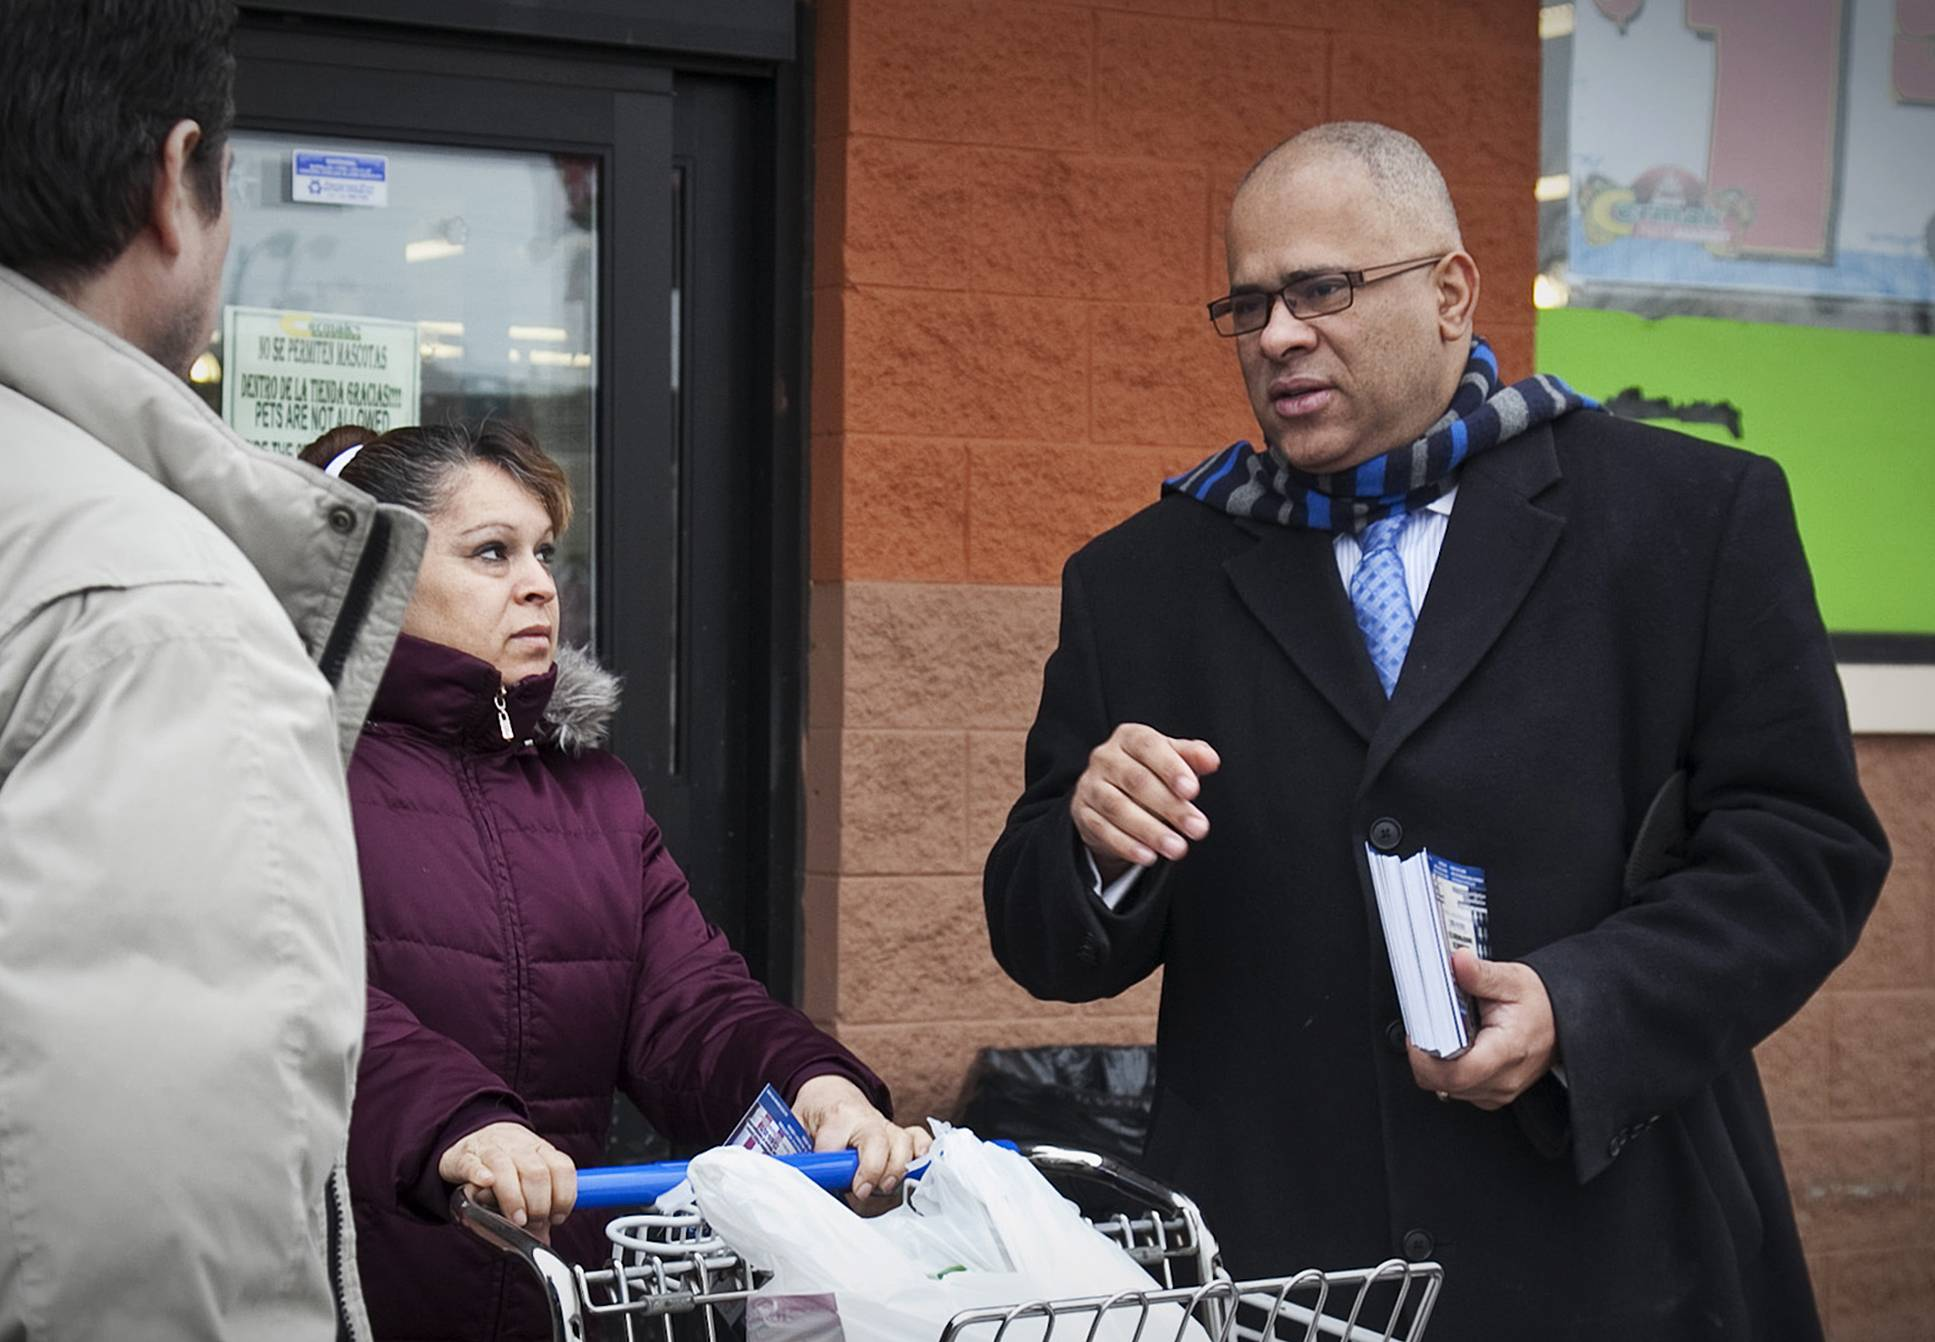 In this Jan. 30, 2014 photo, Tio Hardiman, the former head of CeaseFire Chicago, campaigns for the Democratic nomination for Illinois governor, outside a produce store in Chicago. Hardiman faces incumbent Gov. Pat Quinn in the March 18 primary. Quinn and running mate former Chicago Public Schools CEO Paul Vallas have declined campaign interviews in 2014 and Quinn has virtually ignored Hardiman. The anti-violence activist has camped out outside Quinn's home and campaign headquarters to demand debates, but neither Quinn nor his campaign has answered him.